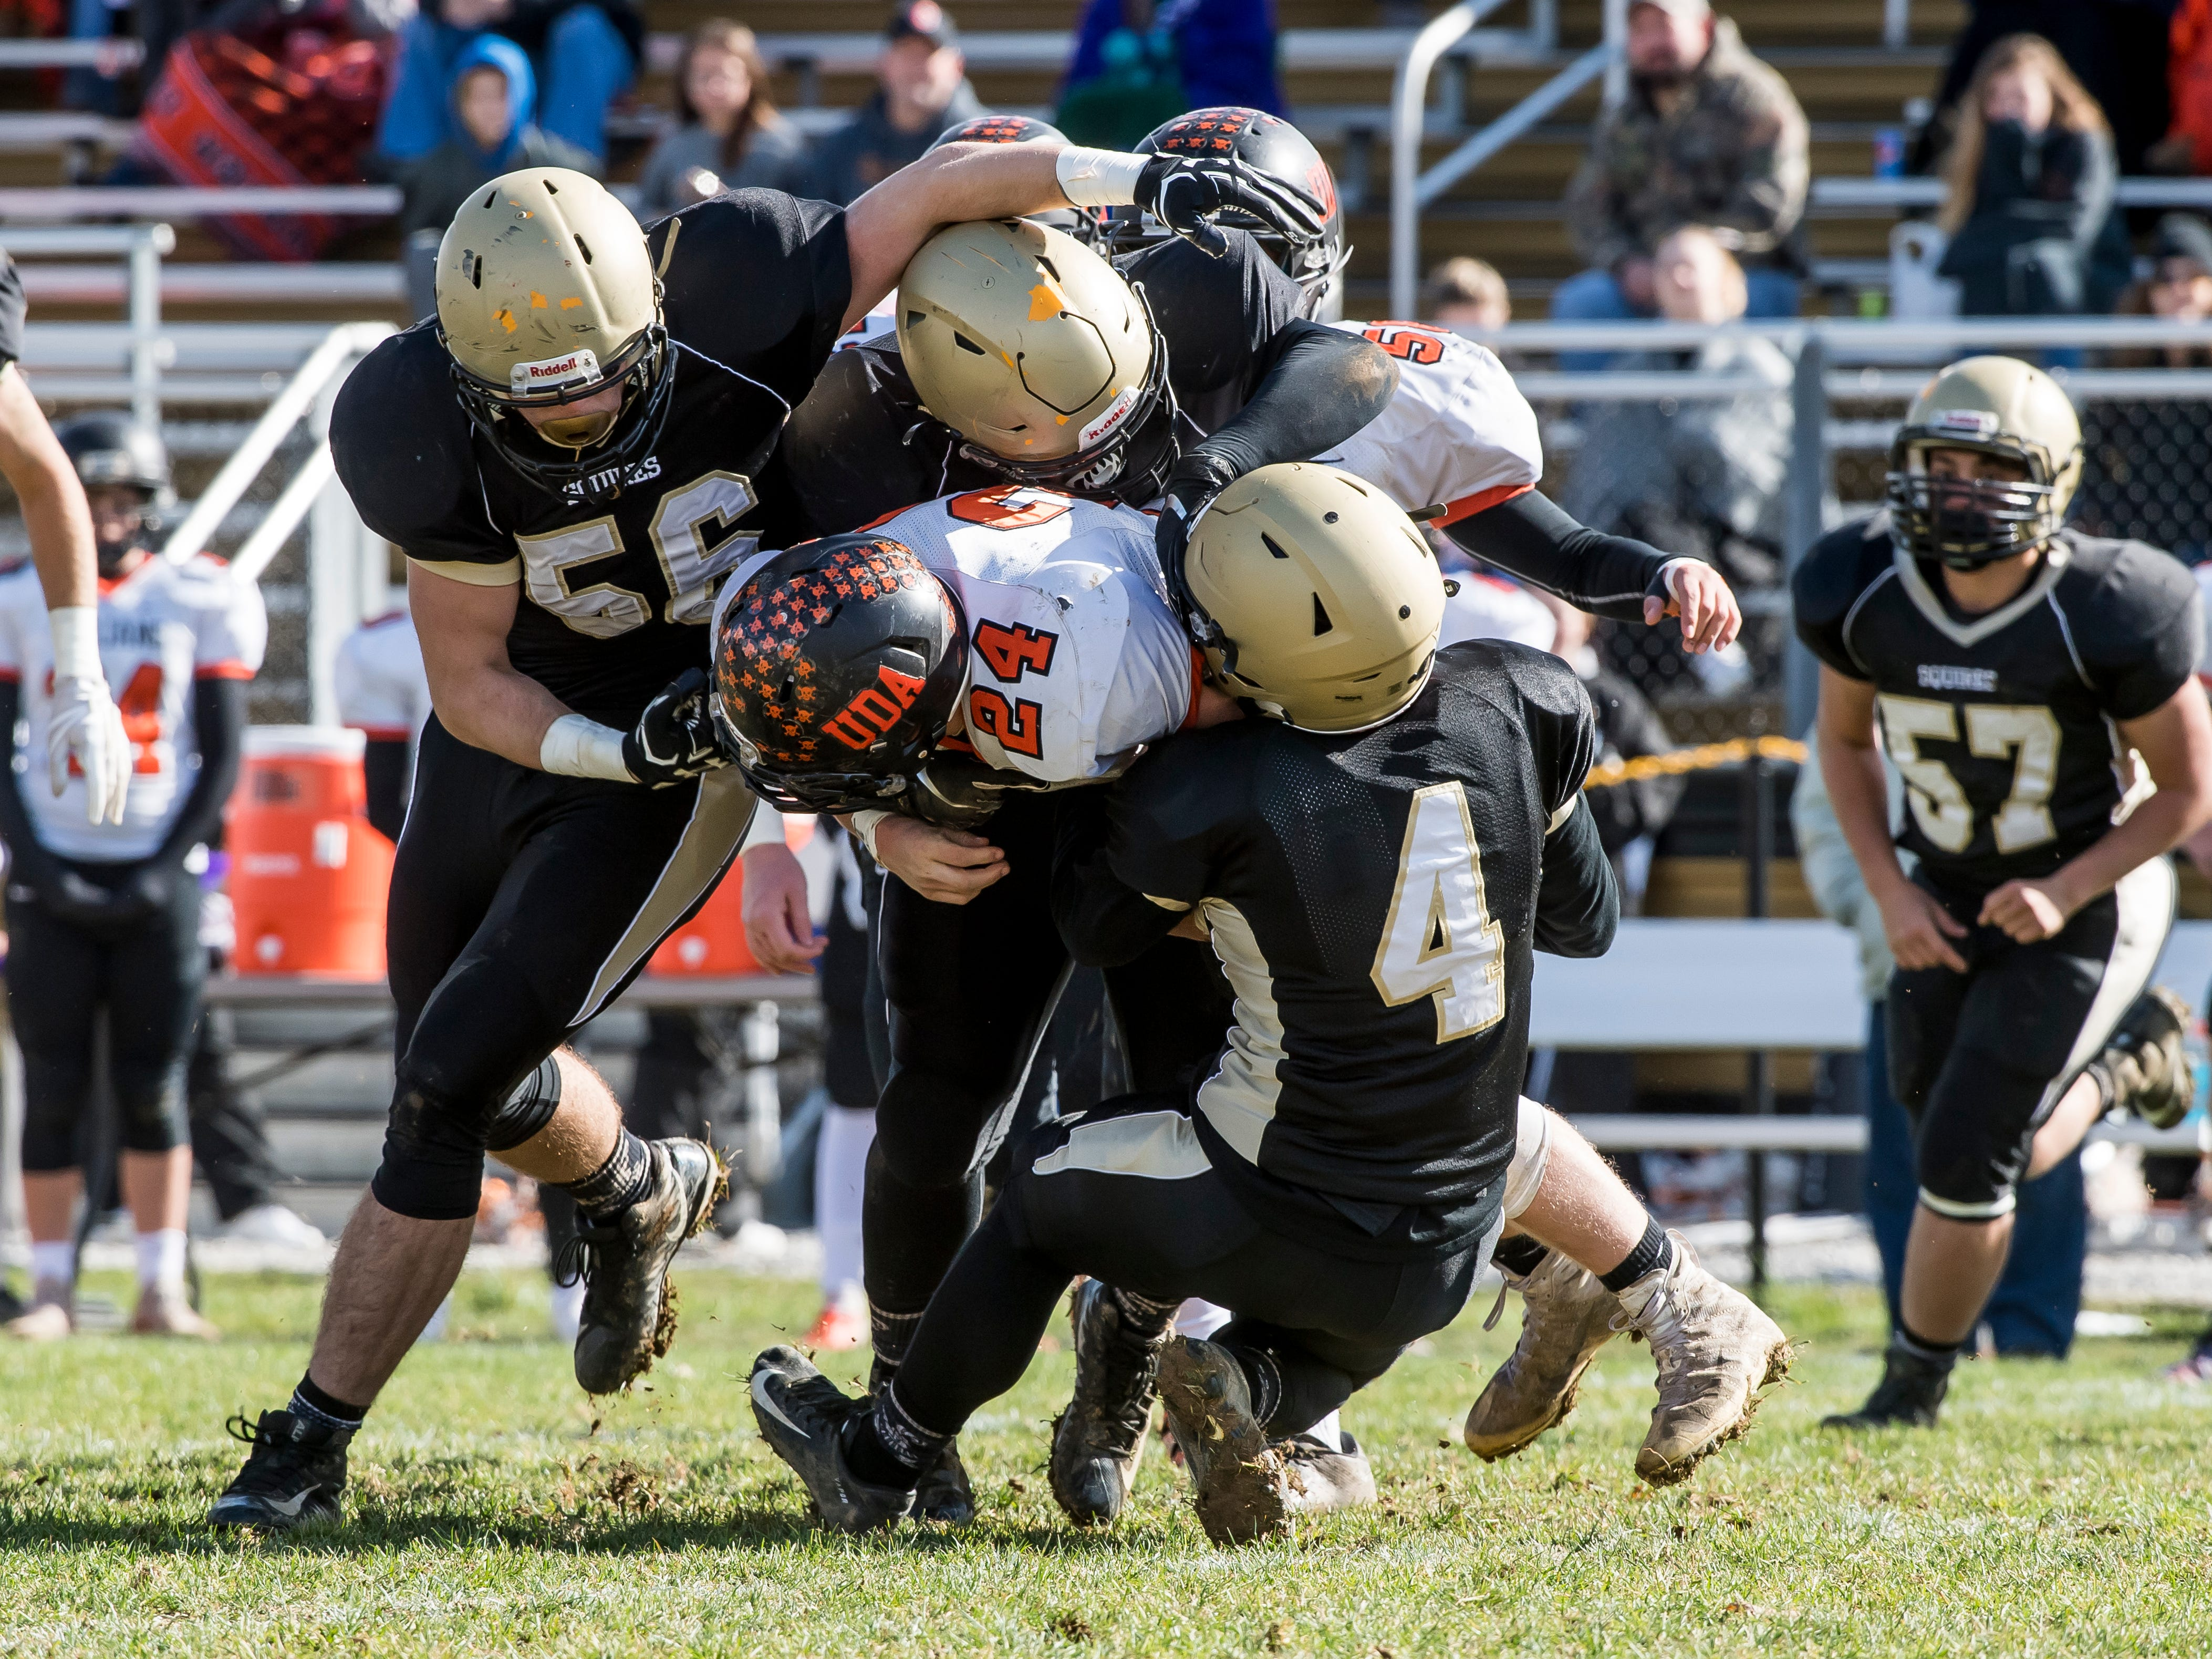 A host of Delone Catholic players tackle Upper Dauphin's Jake Ramberger during a District III Class 2A semifinal game on Saturday, November 3, 2018. The Squires won 48-23.